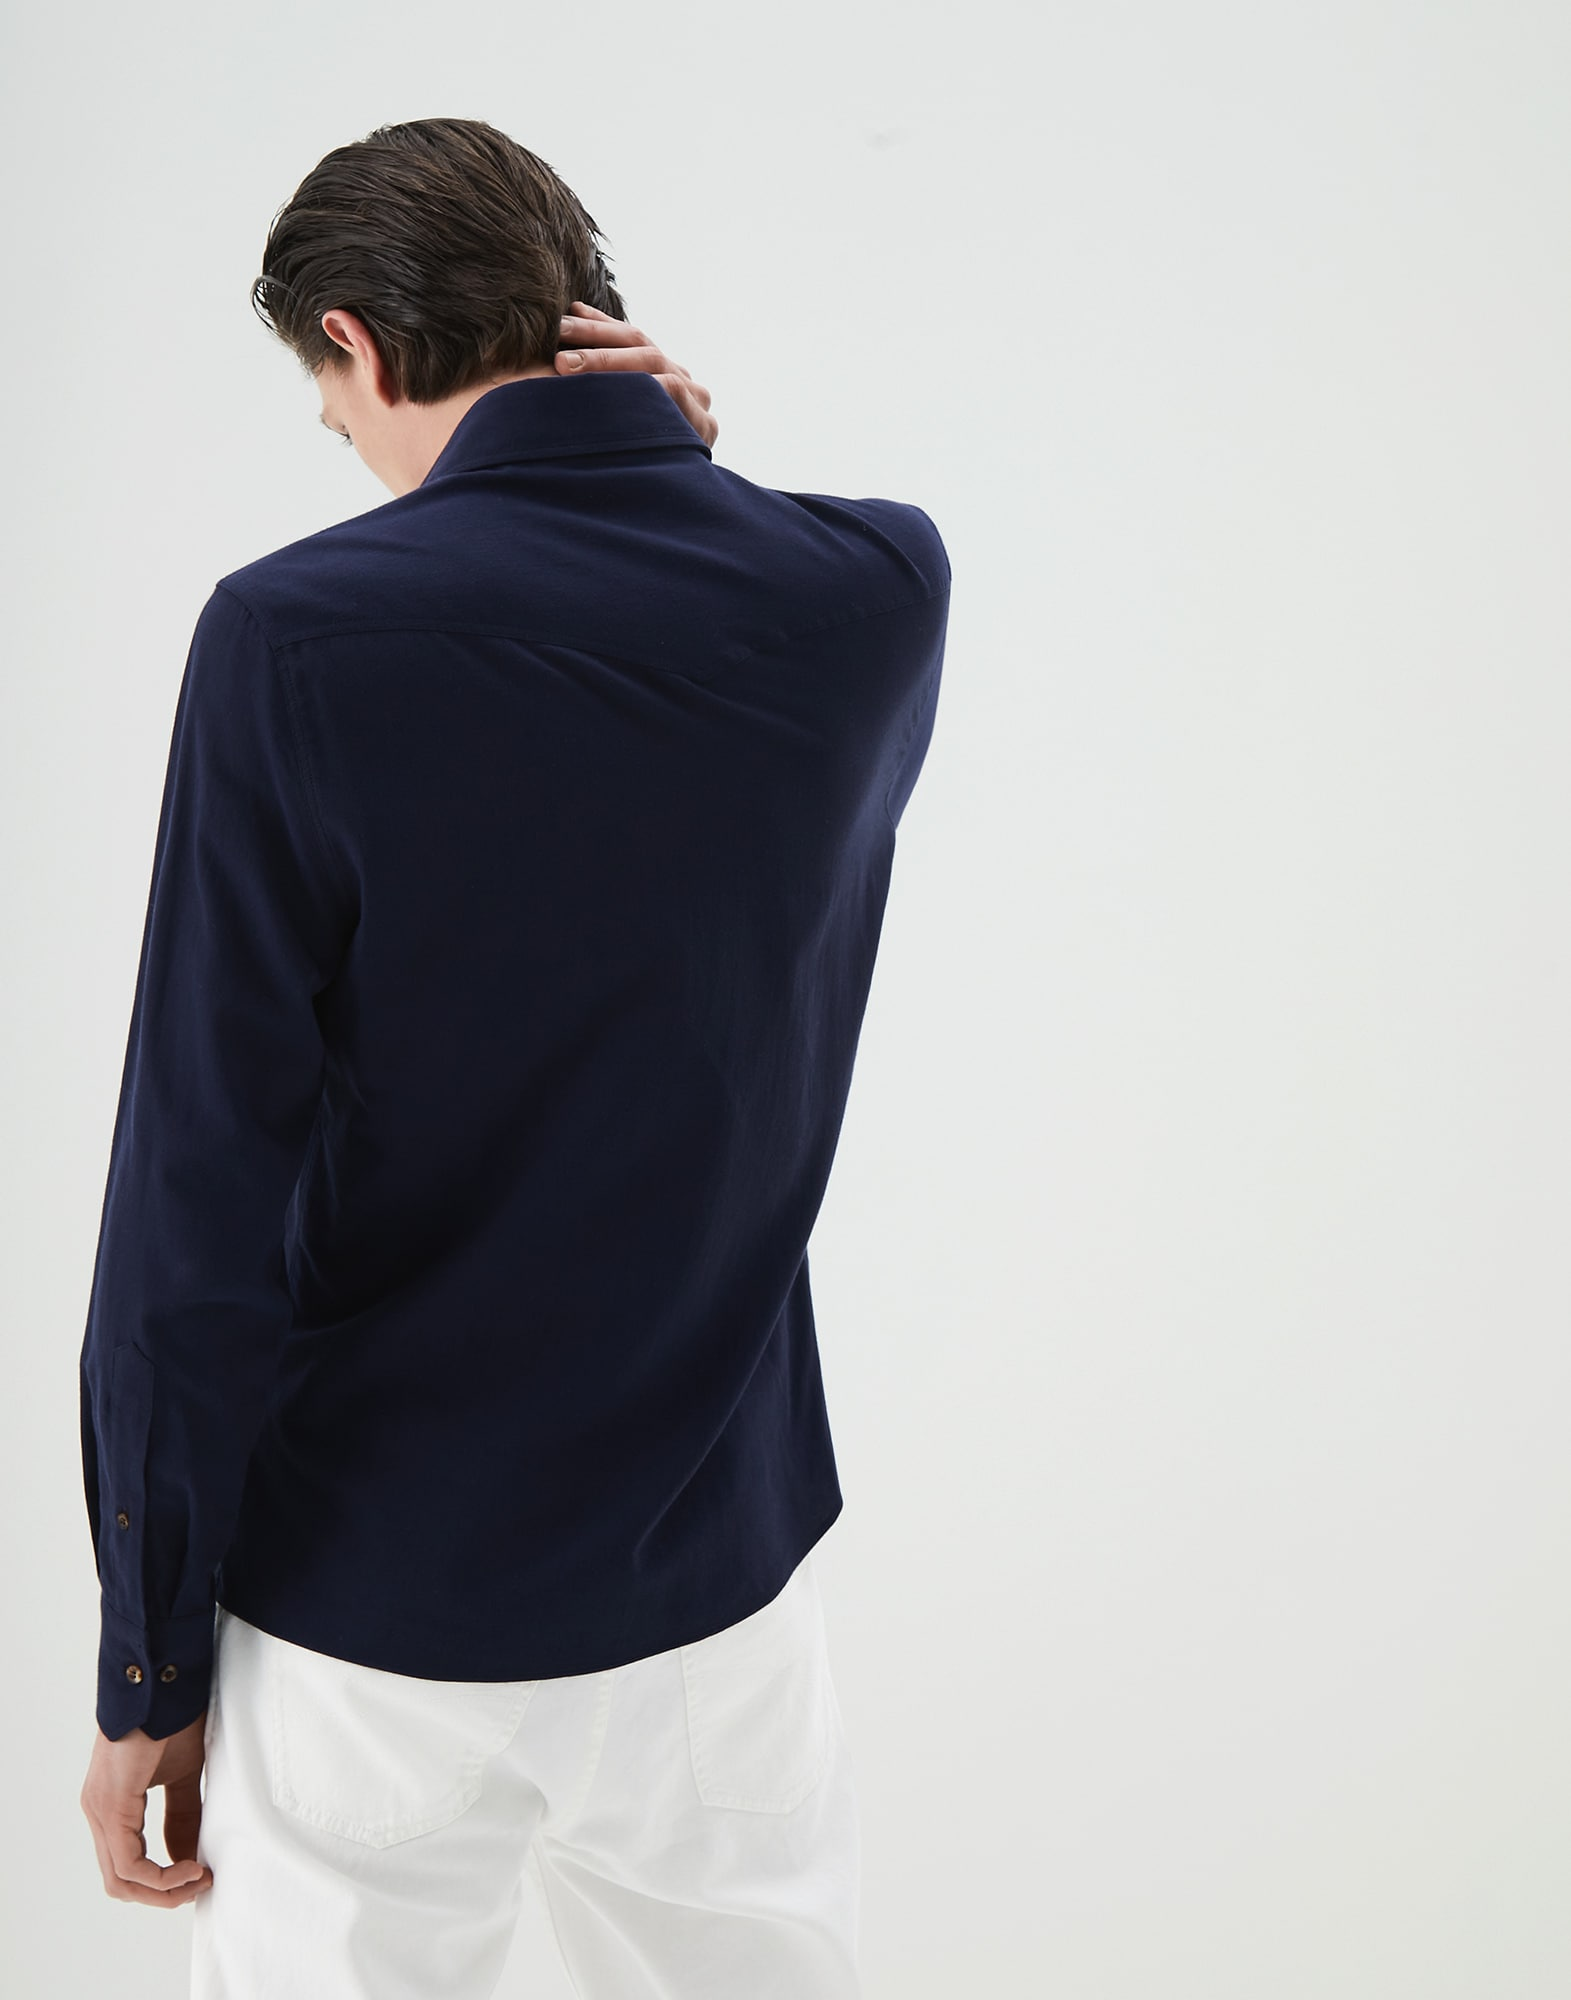 Casual Shirt Blue Man 2 - Brunello Cucinelli